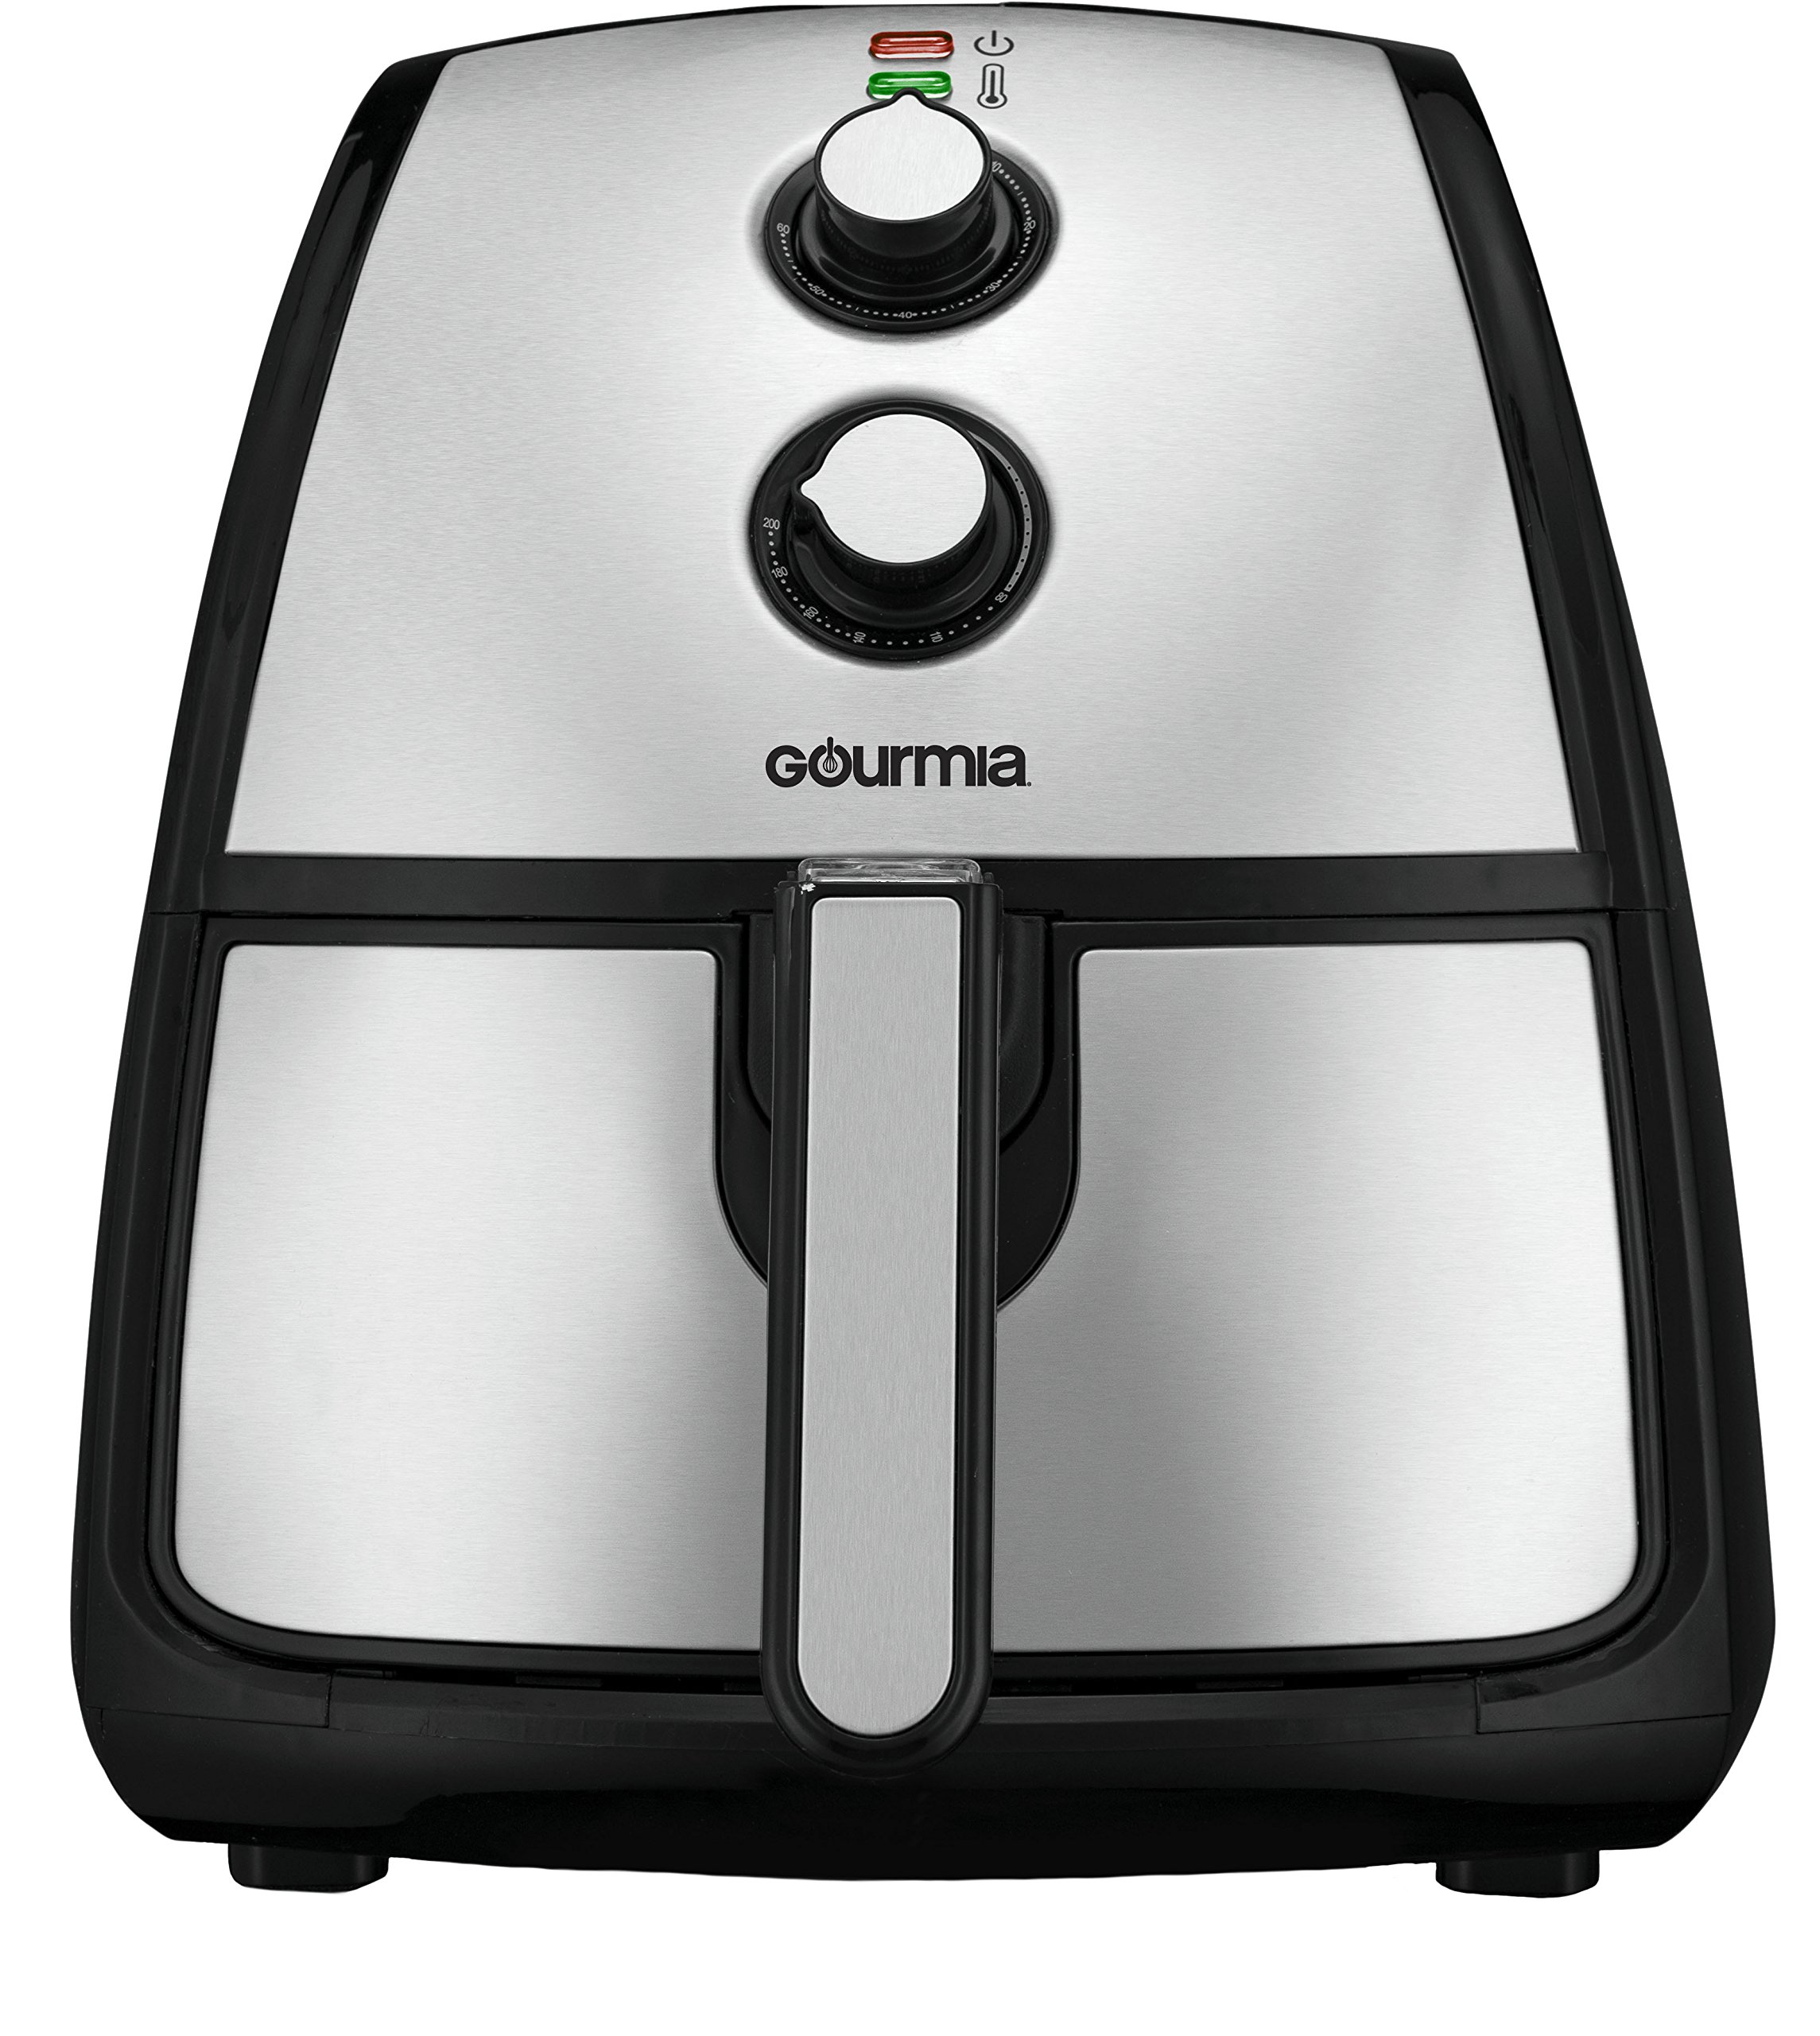 Gourmia GAF560 360° Turbo Air Fryer - Adjustable 60 Minute Timer & 400° Temperature Dials - Removable Basket - No Oil Fat Free Healthy Frying - 5 Qt -1500w - Stainless Steel - Bonus Cookbook Included